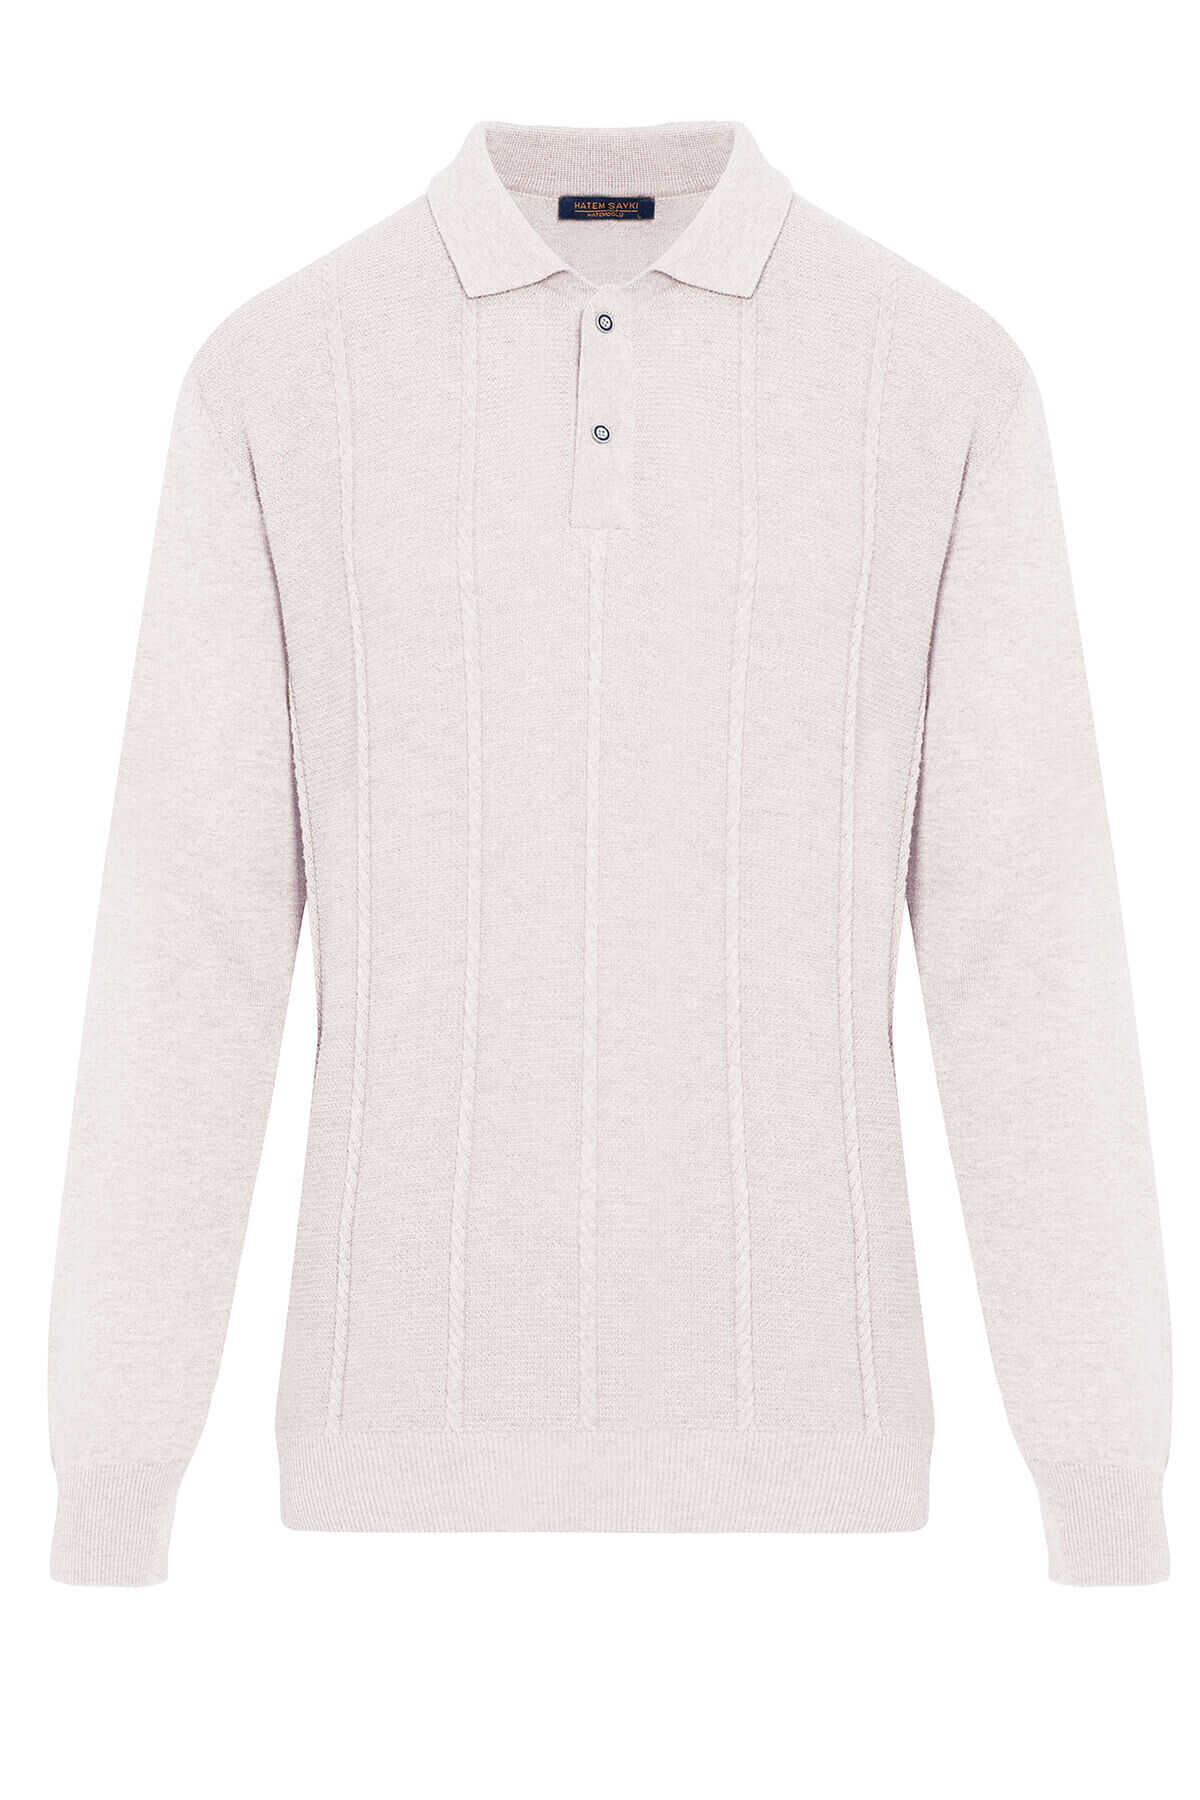 - Beige Polo Neck Buttoned Sweater